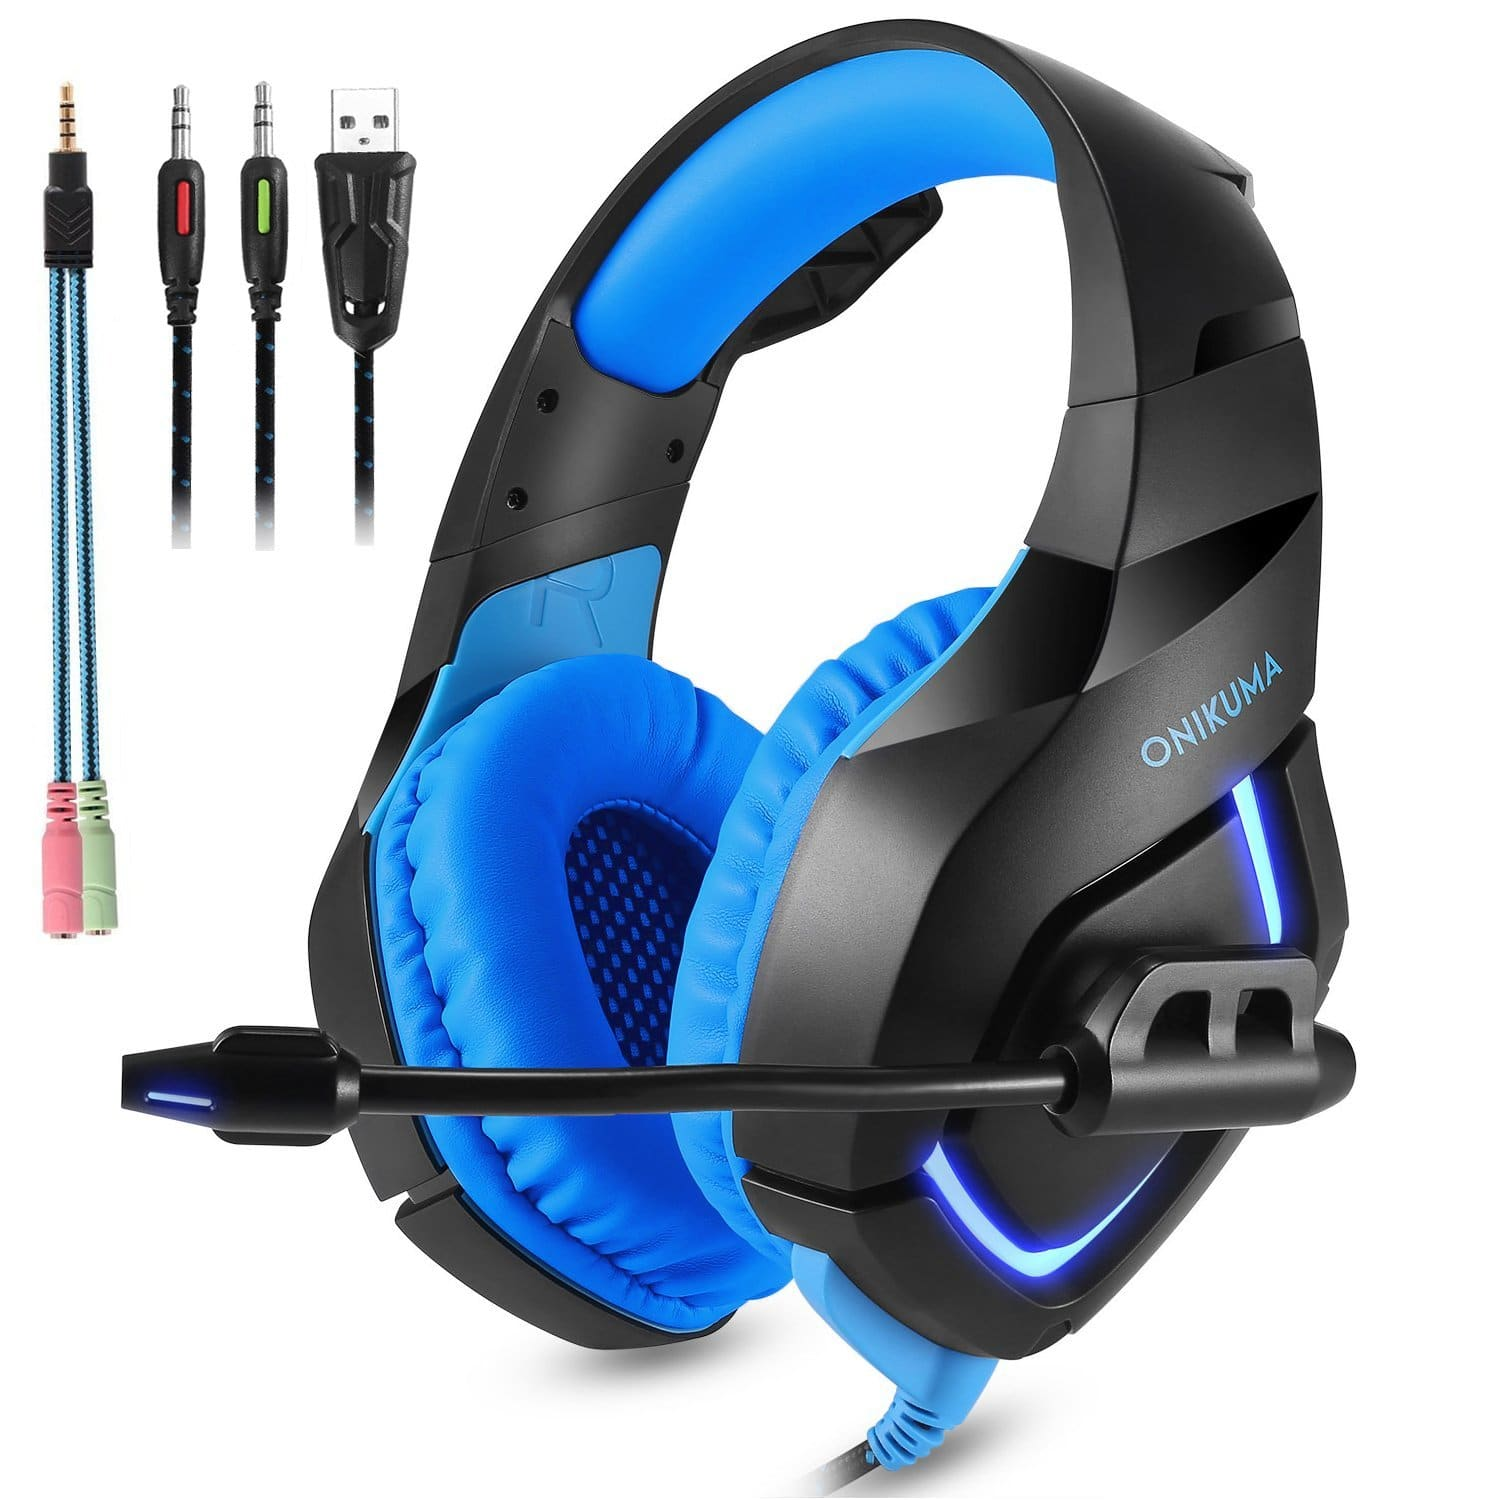 gaming headset with mic for xbox one ps4 nintendo switch ac at amazon page 2. Black Bedroom Furniture Sets. Home Design Ideas